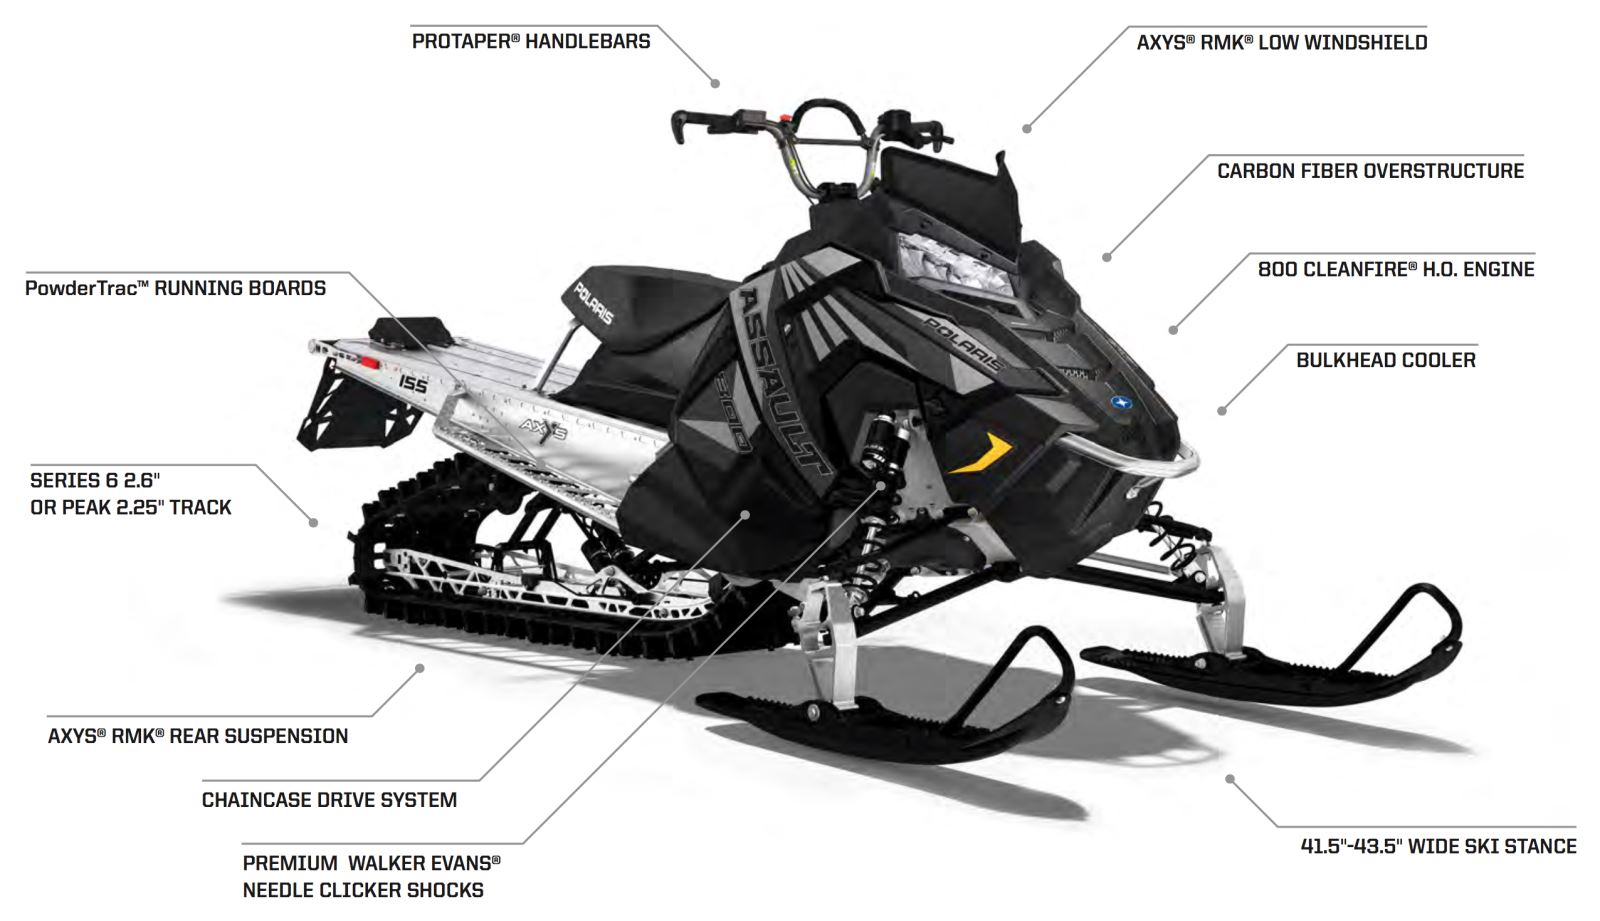 Another Por Polaris Model Makes The Move To Ault Chis For 2017 Switchback Represents Gest Chunk Of Crossover S